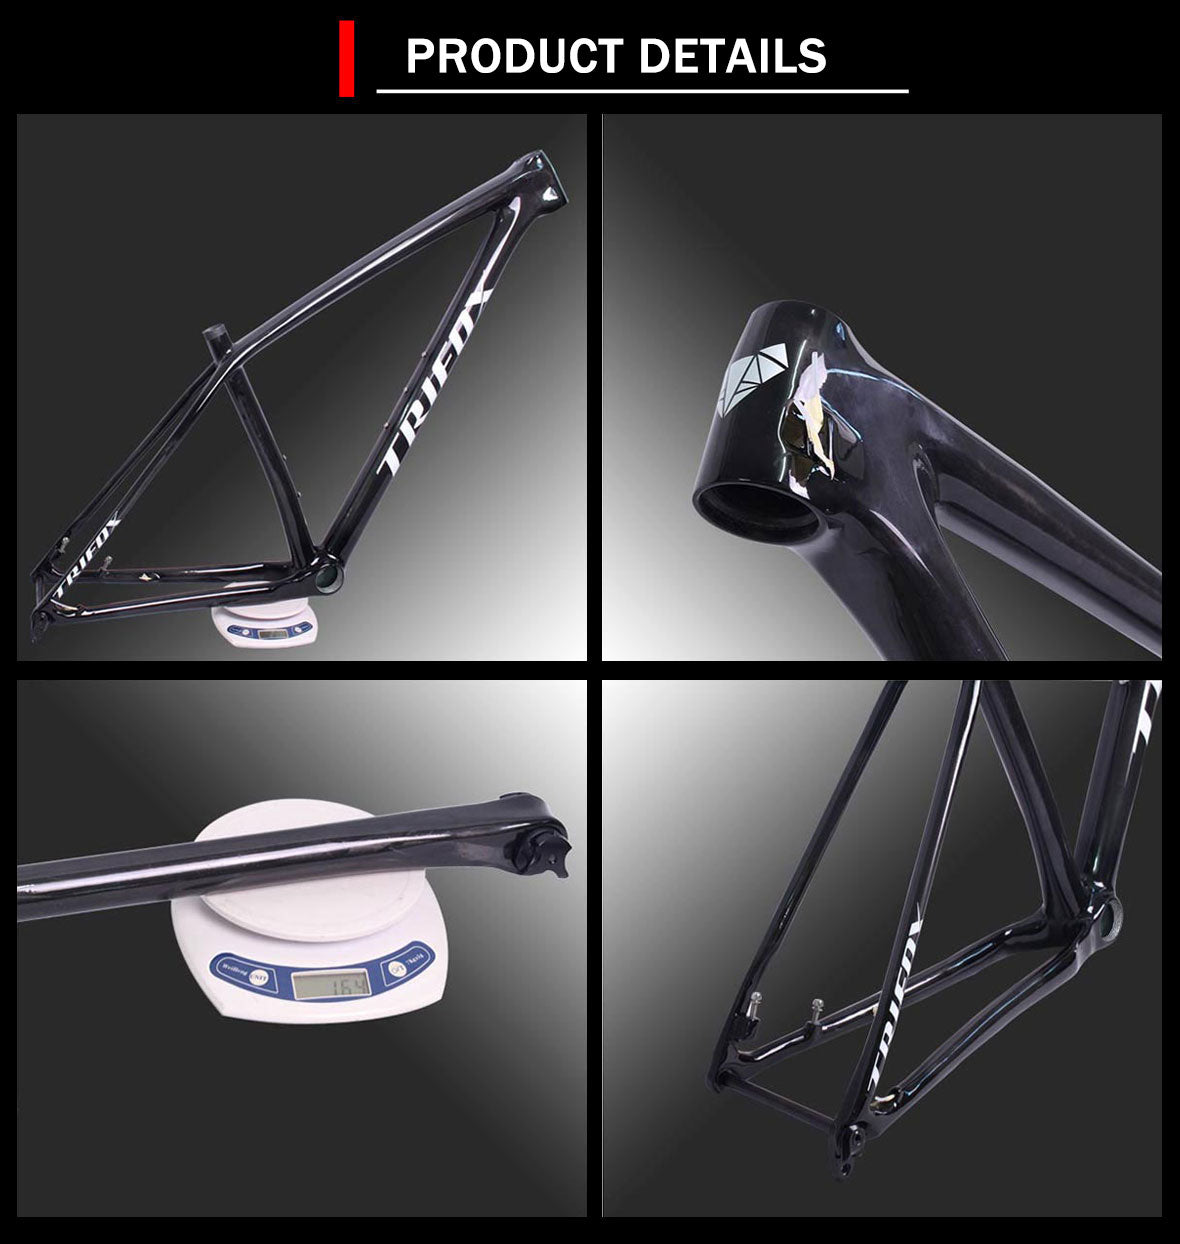 Deatails of Trifox 29er Lightweight Carbon MTB Hardtail Boost Frame SDY20